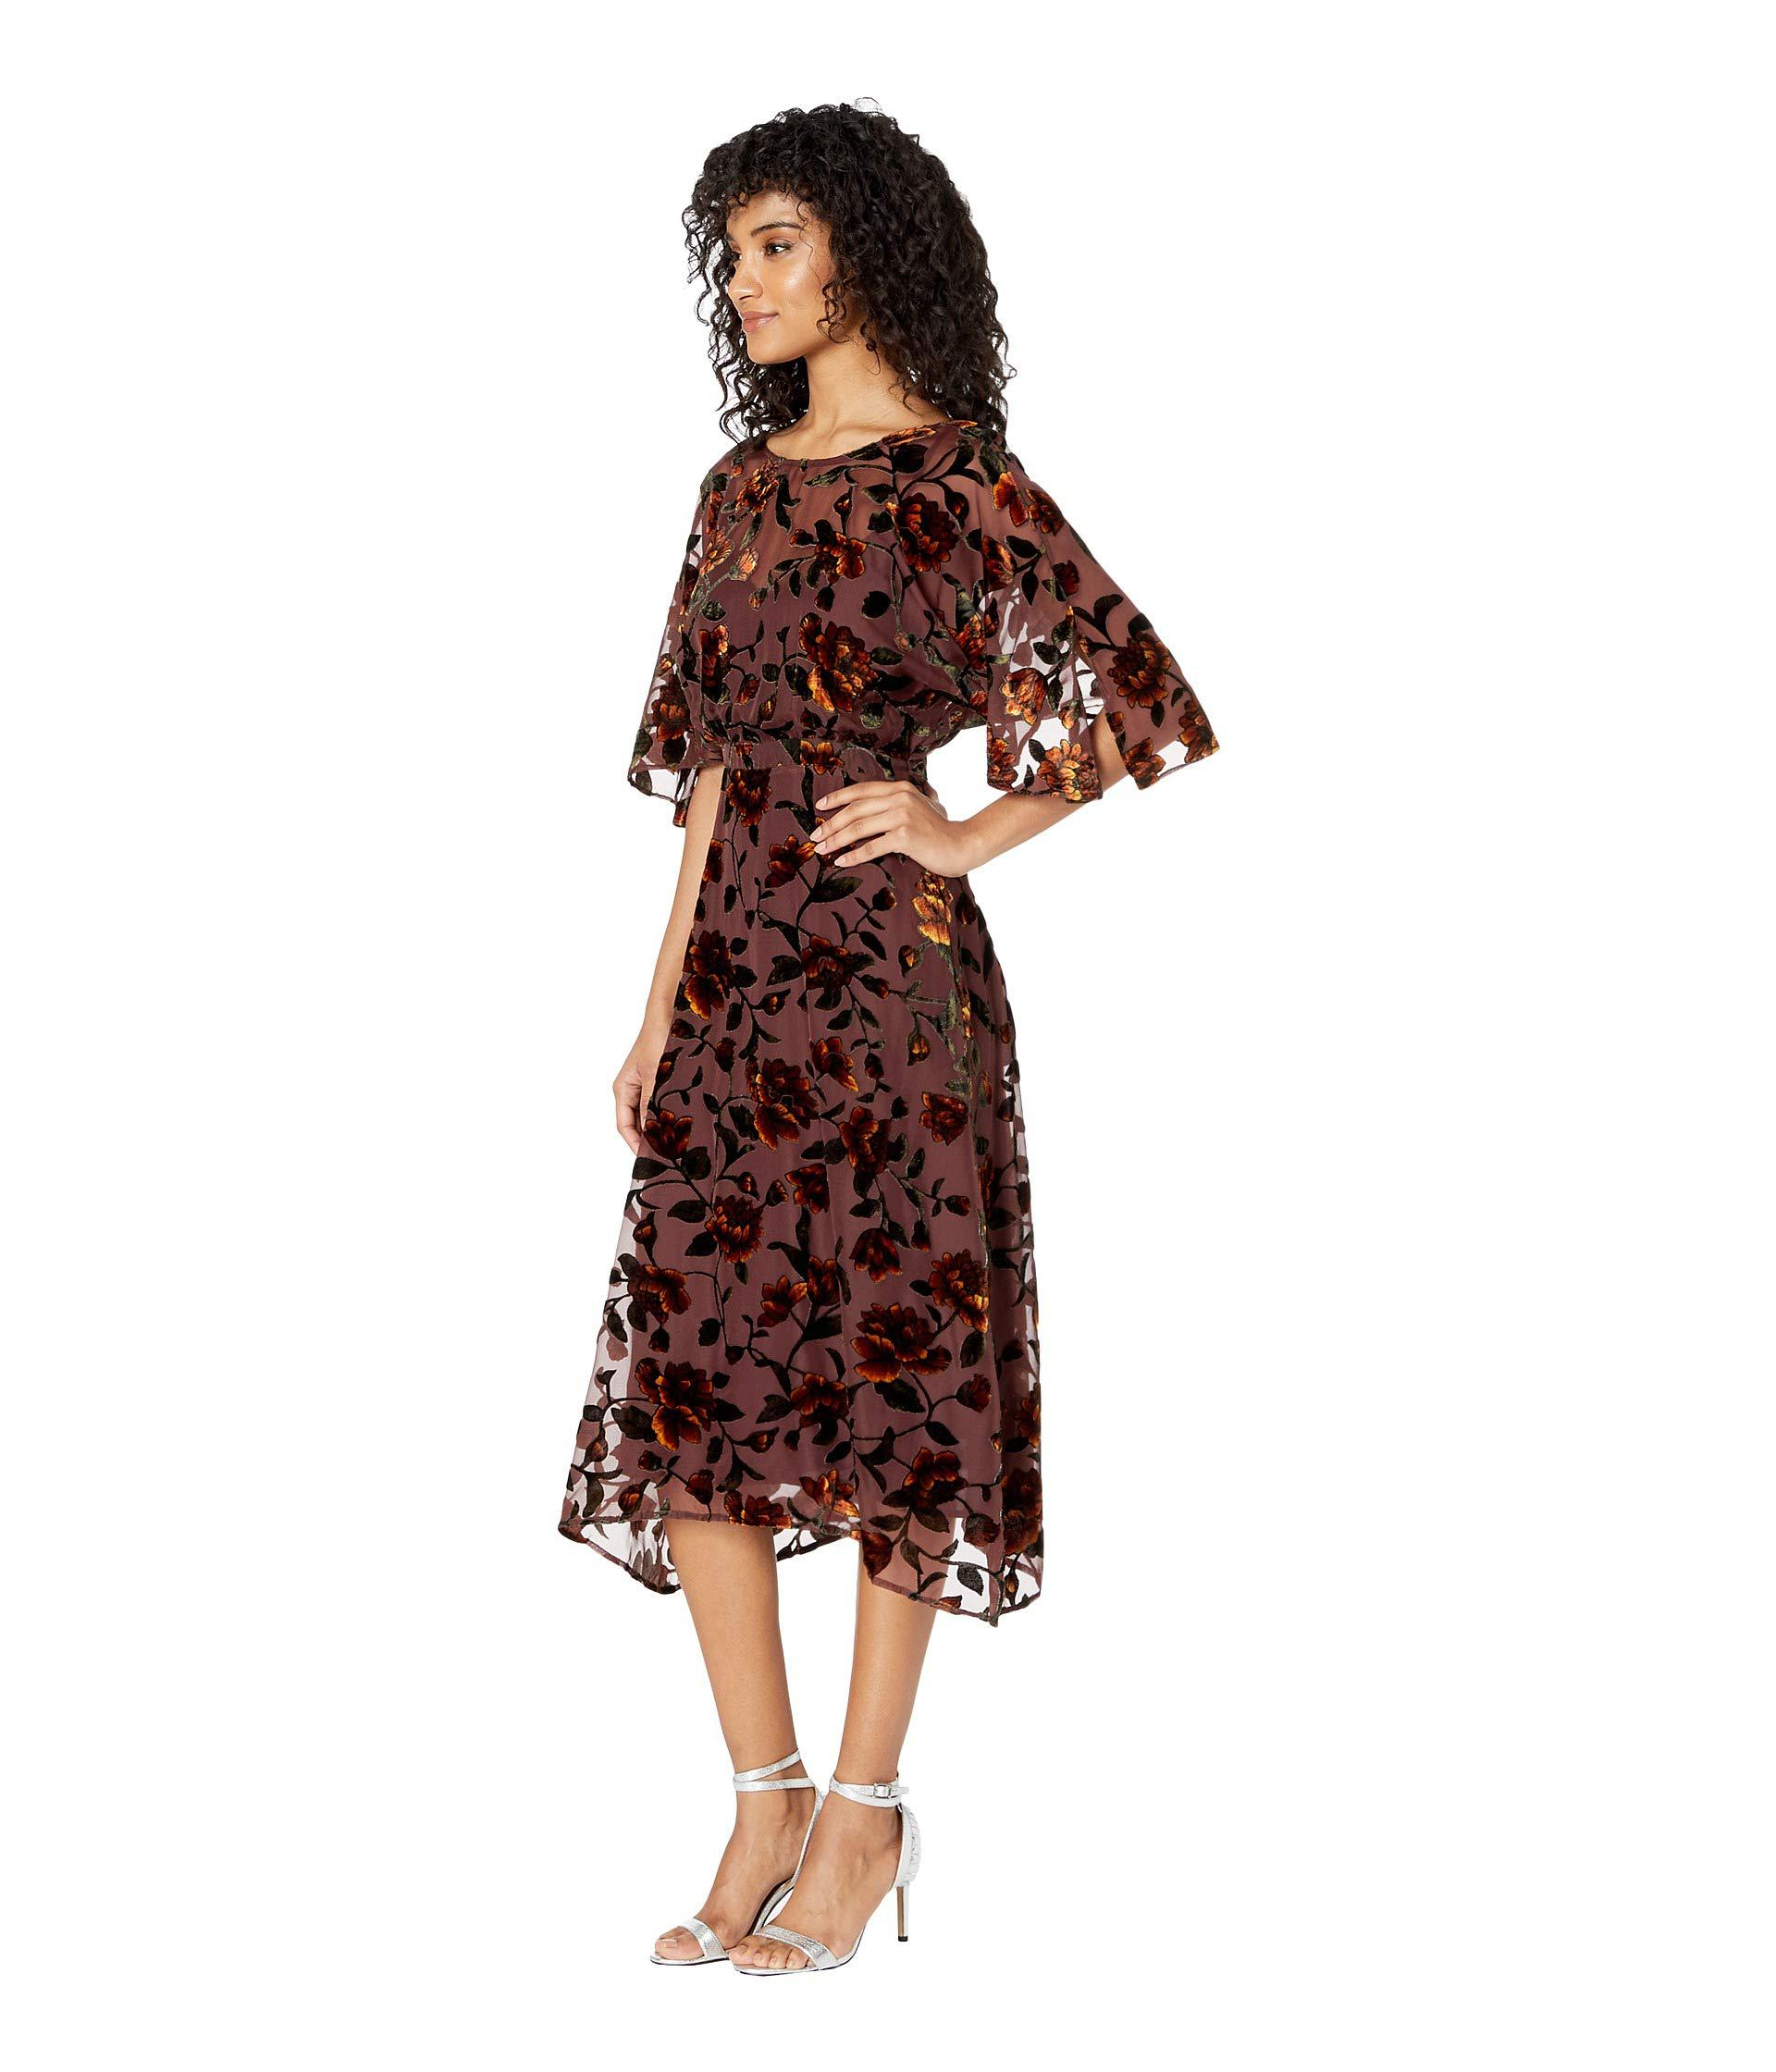 11cbe74fe7e0 Astr Sadie Dress (golden Rust Floral) Women's Dress in Brown - Lyst